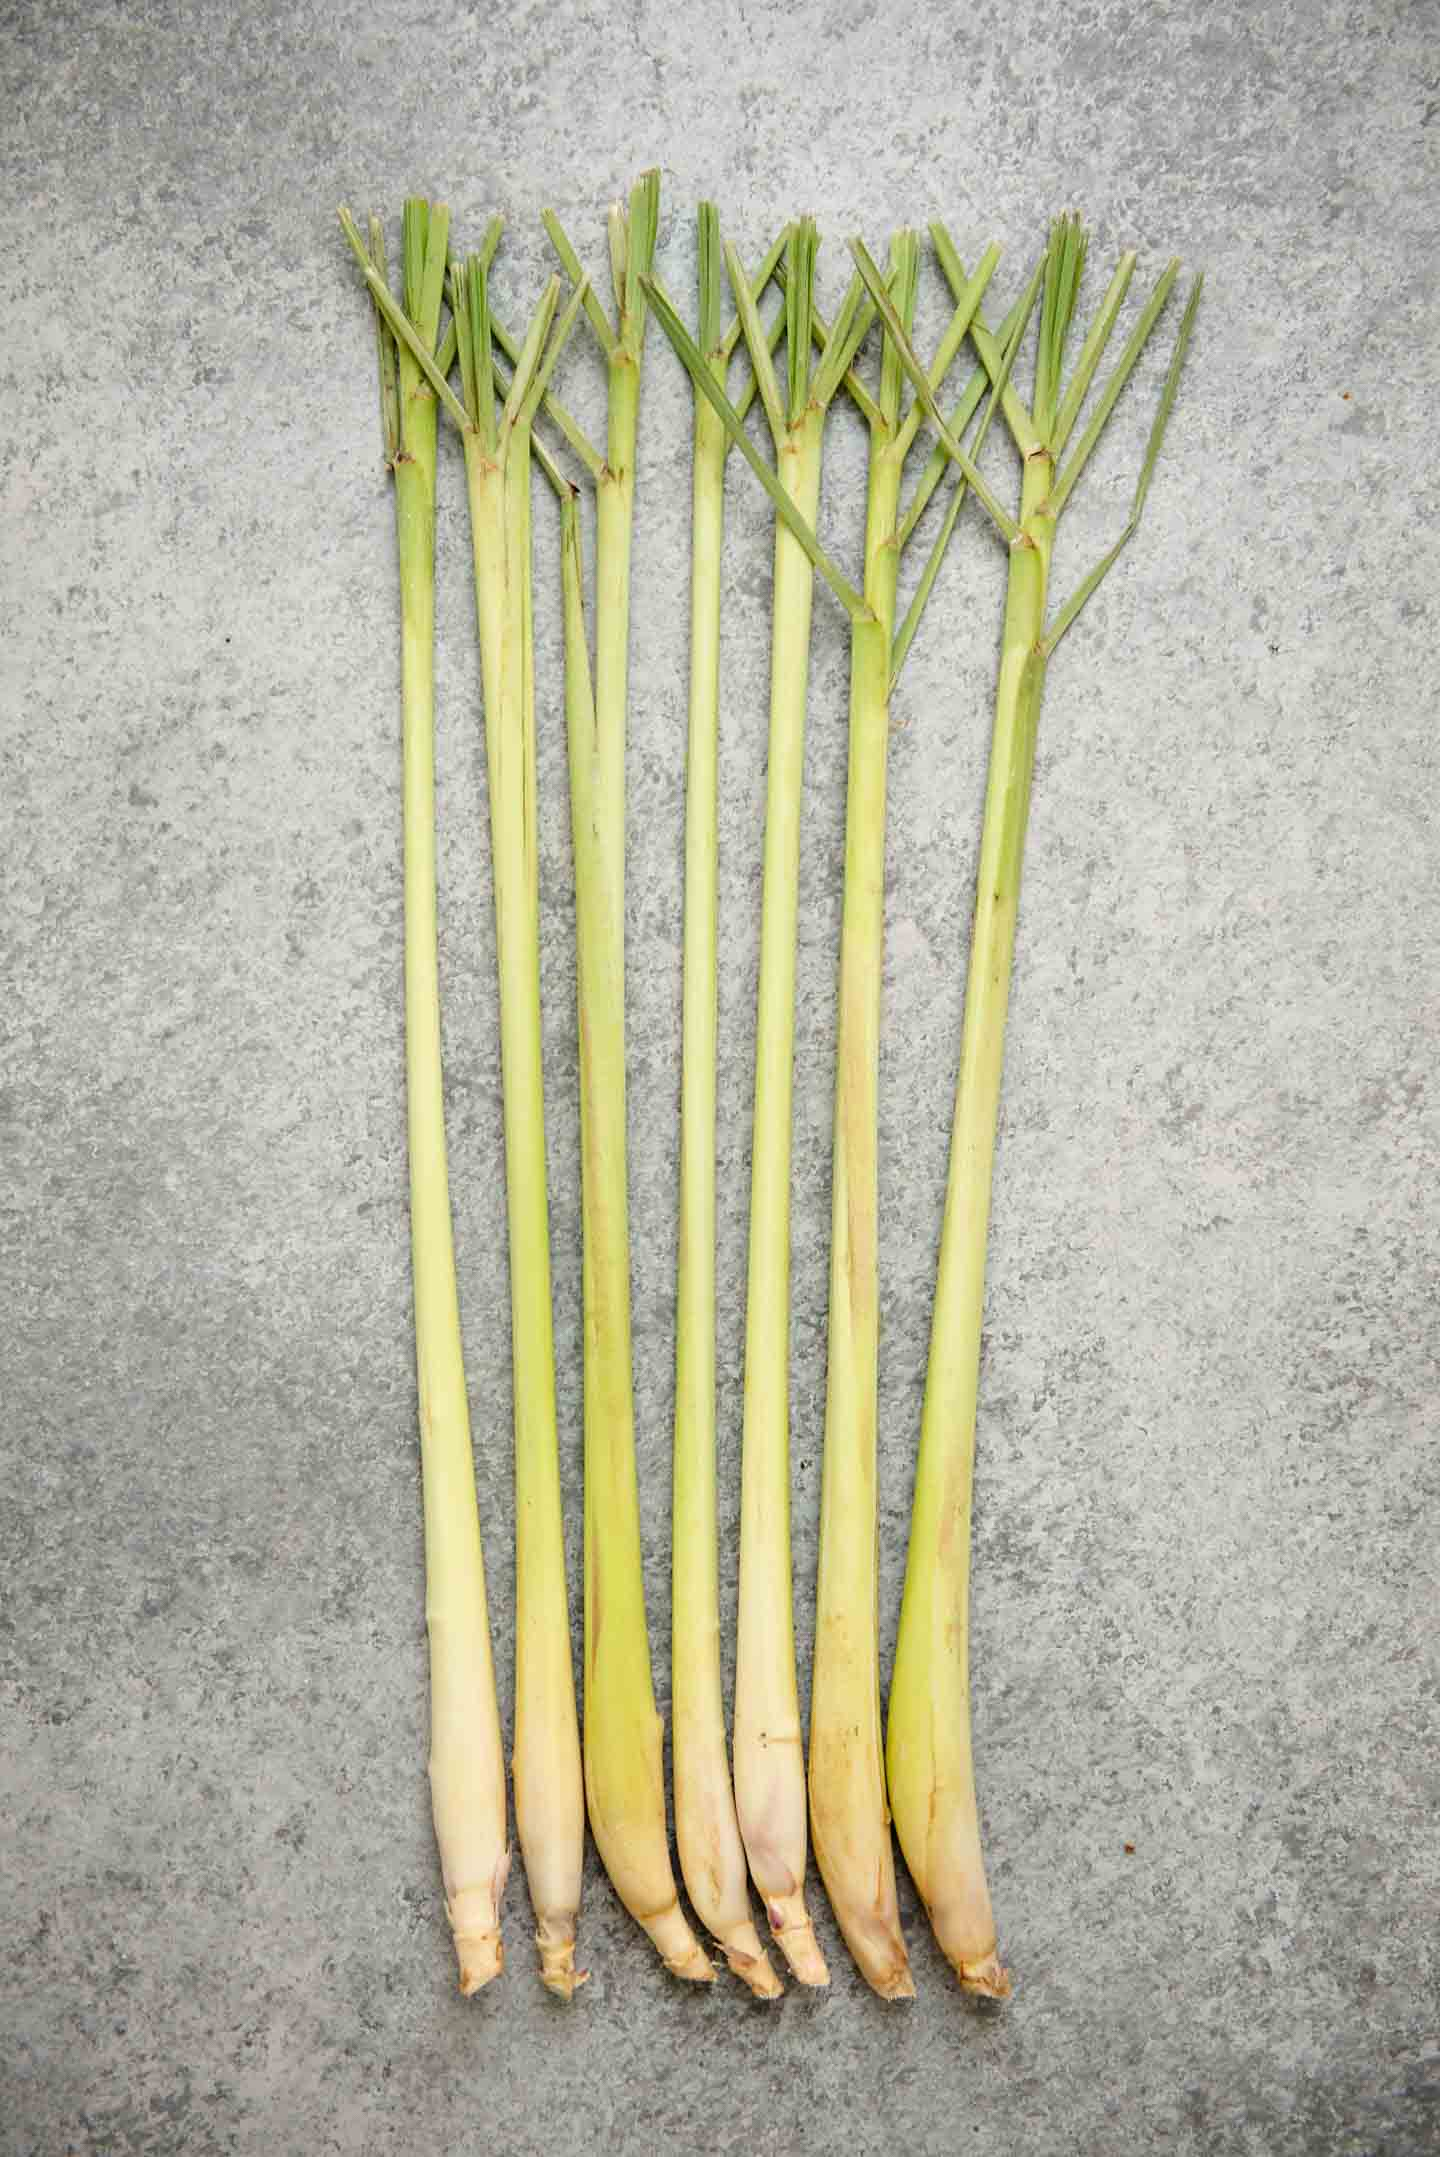 How to Cook With Lemongrass